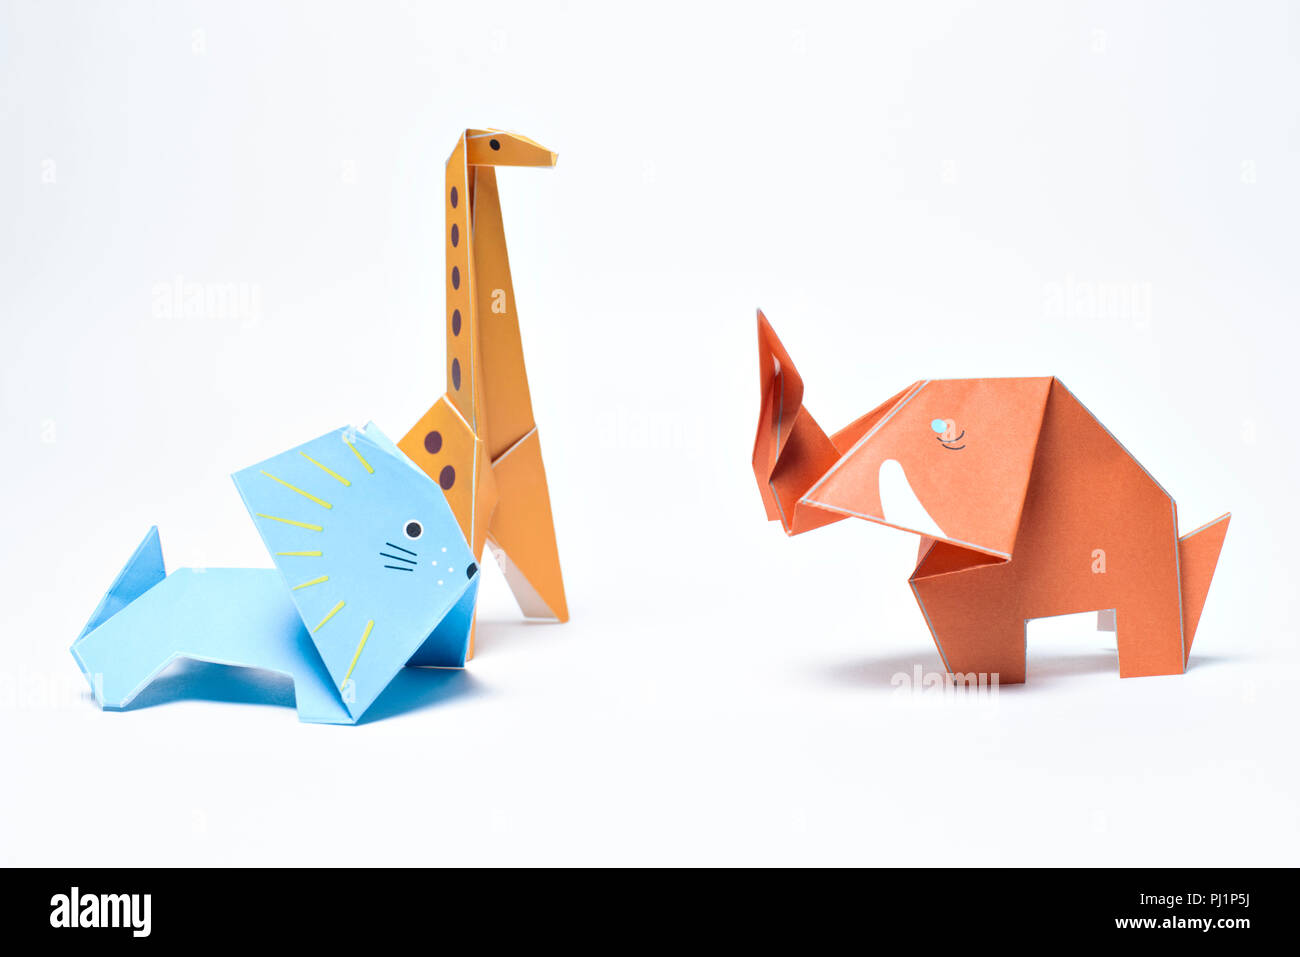 Paper Origami Giraffe Lion And Elephant On White Background Stock